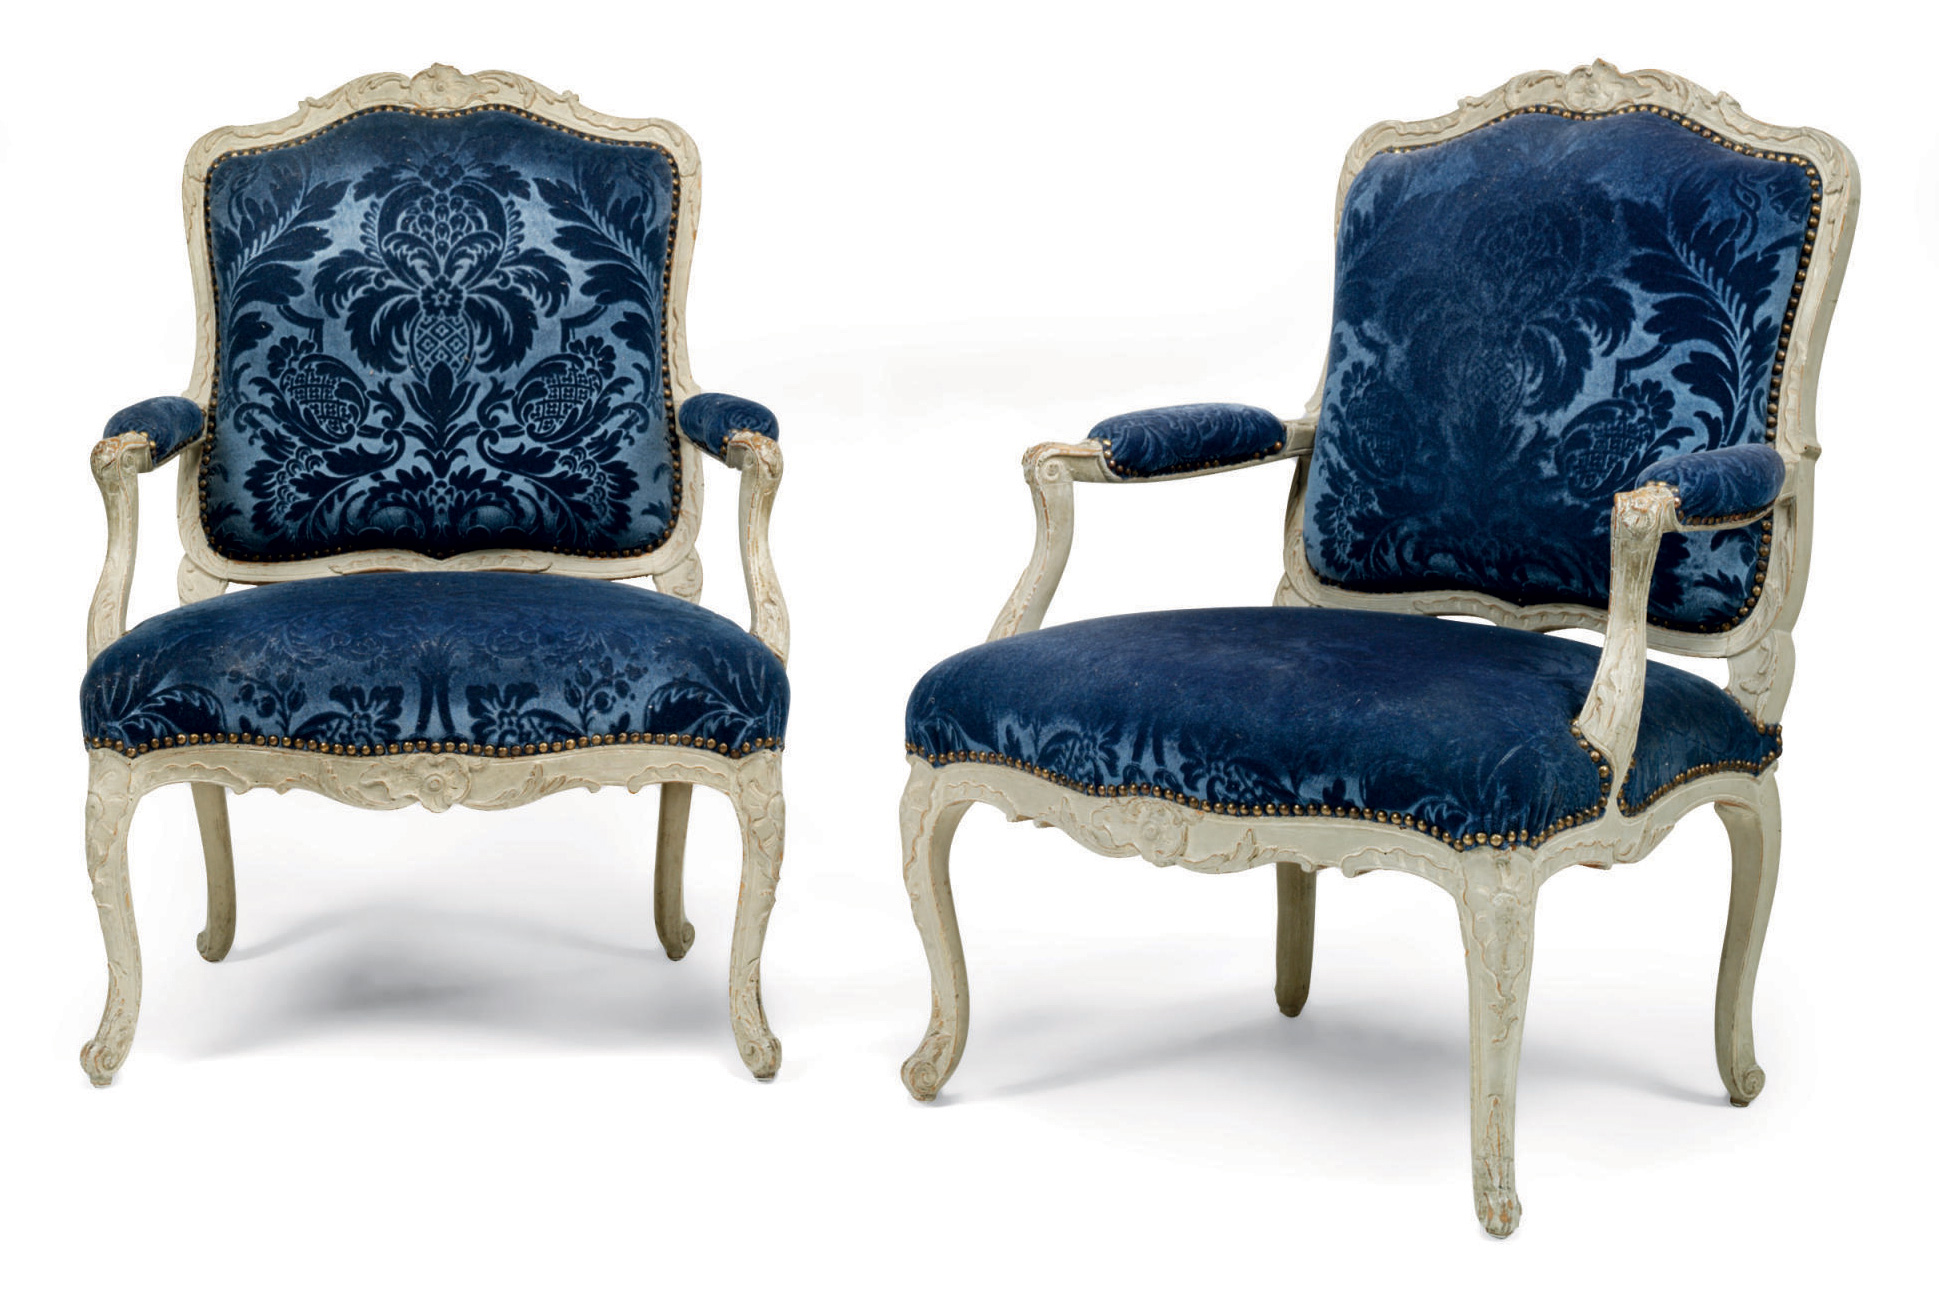 A PAIR OF LOUIS XV GREY-PAINTED FAUTEUIL À LA REINE